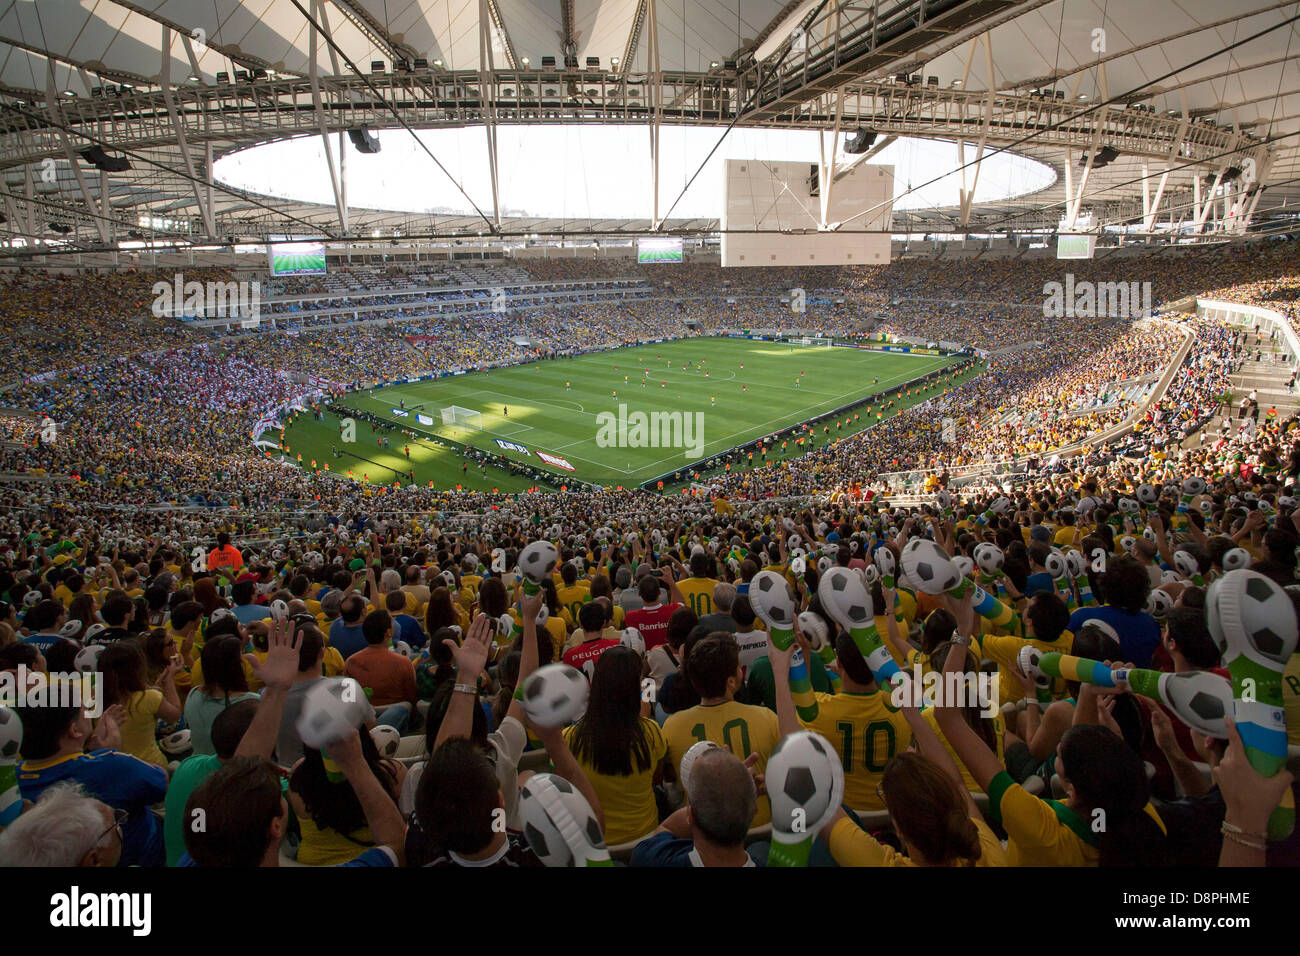 Brazil playing England in a friendly game in the new Maracana Stadium, newly renovated for Brazil's hosting - Stock Image